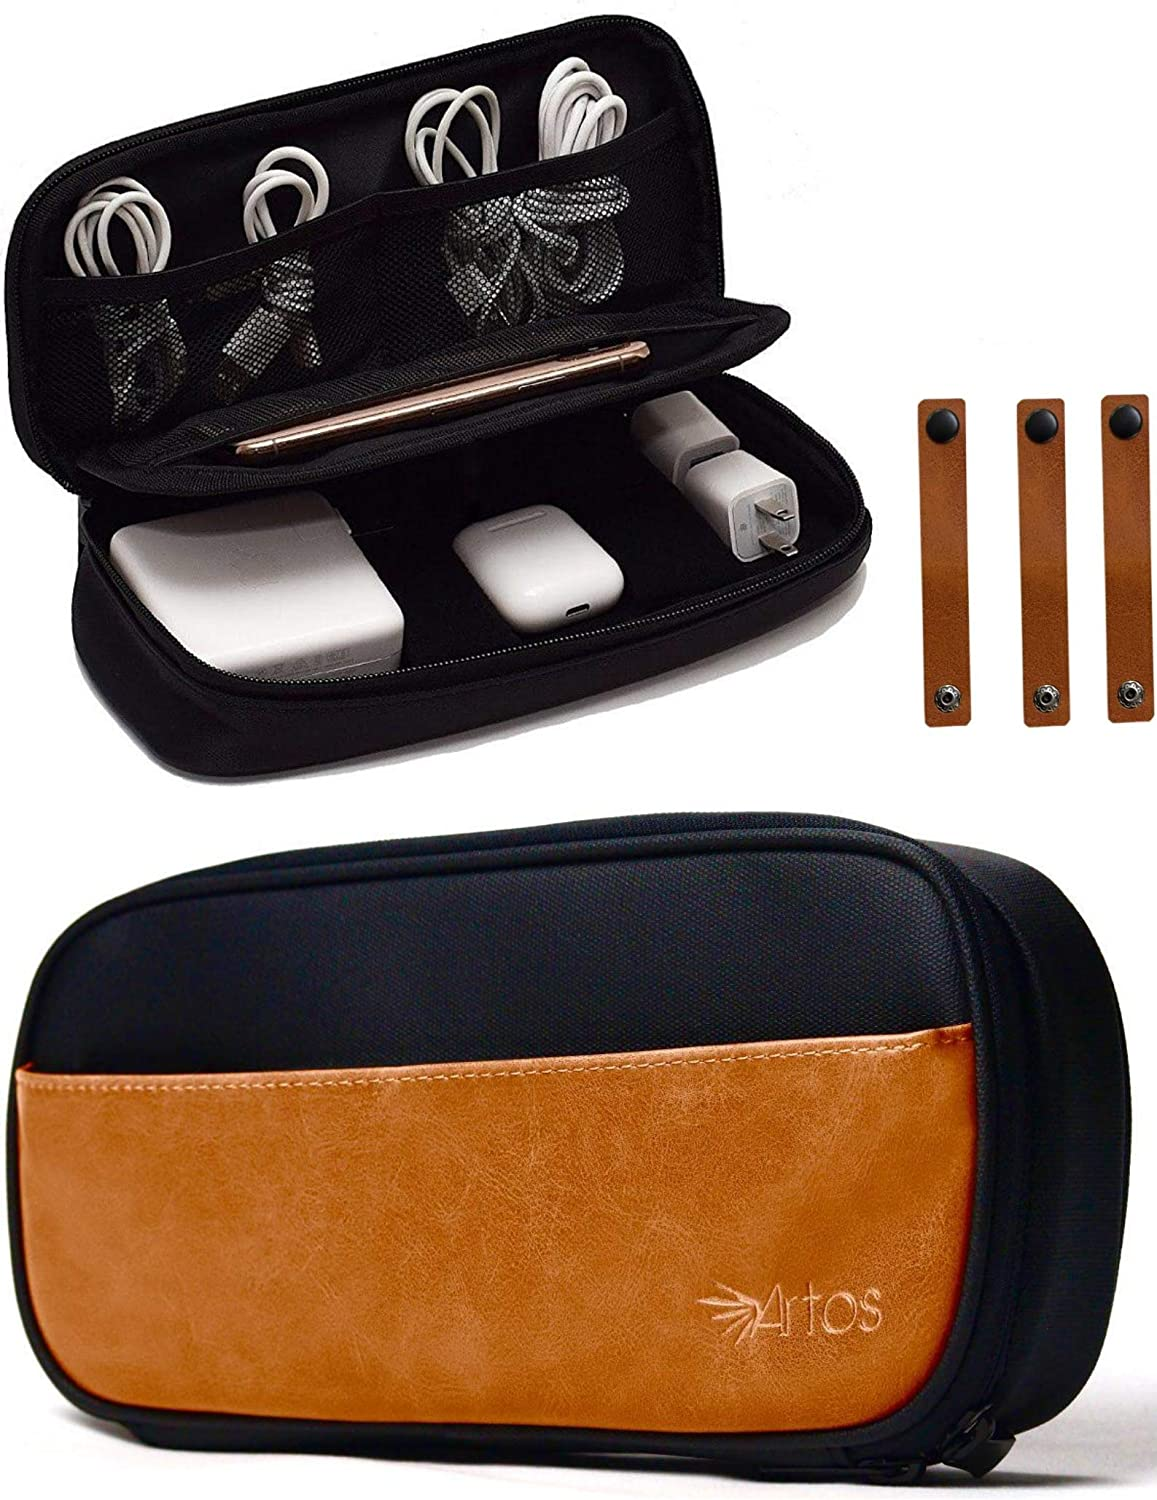 Pu Leather & Canvas Electronics Organizer Case Accessories Bag W/ 3 Leather Cable Straps | Tech, Gadget Zipper Pouch| for Cord, Phone, Tablet, Laptop Chargers, Power Bank